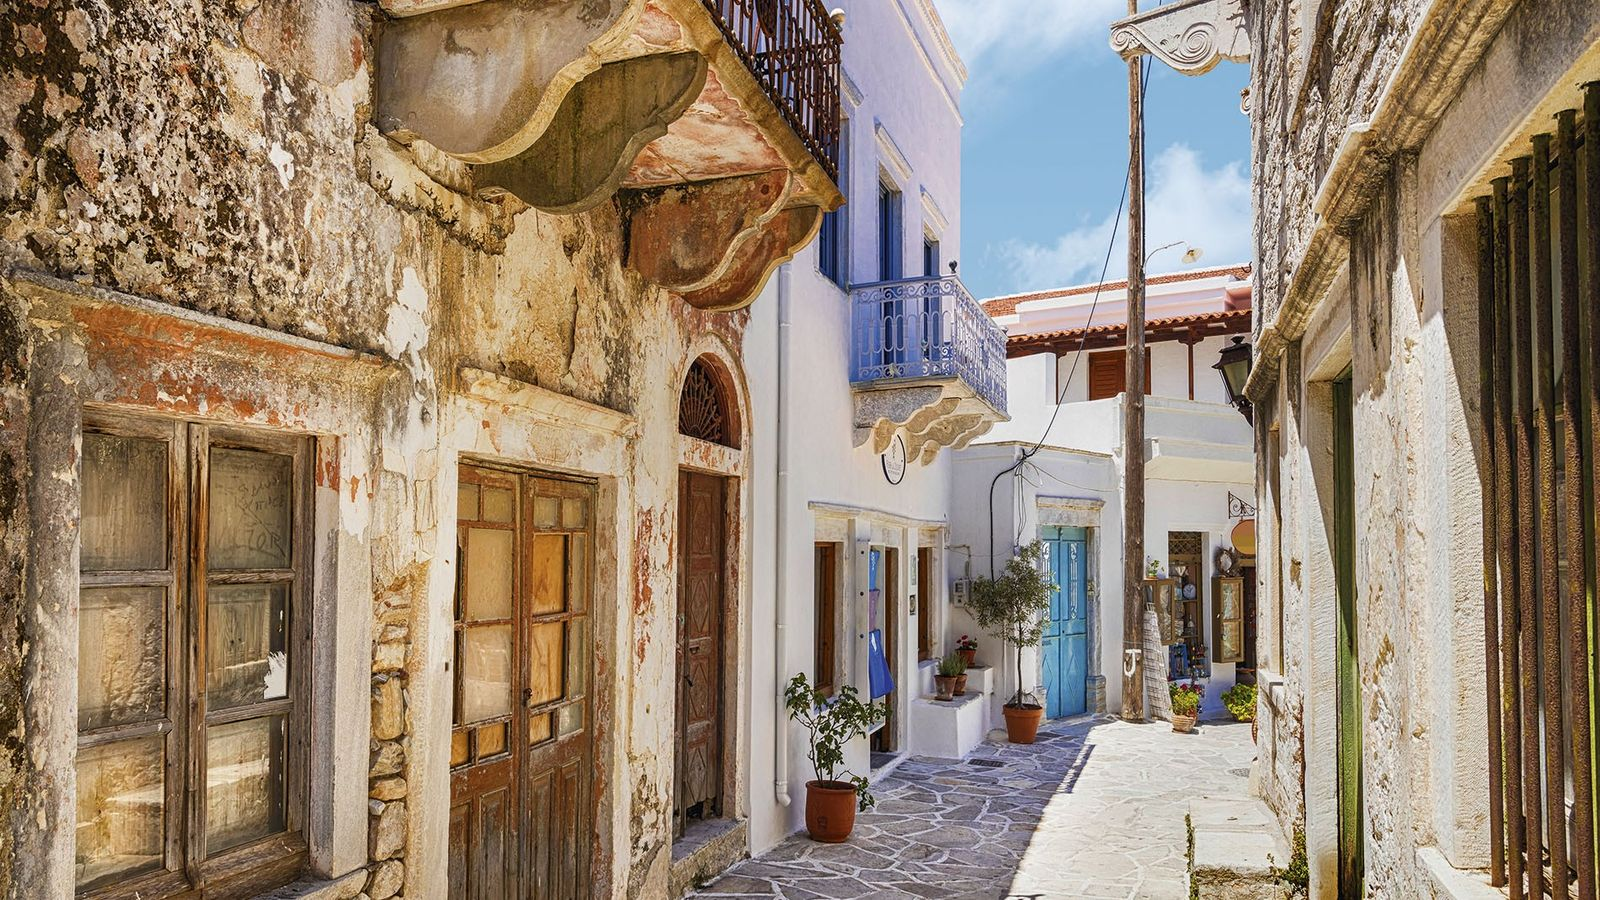 Traditional backstreet in Naxos, Greece.